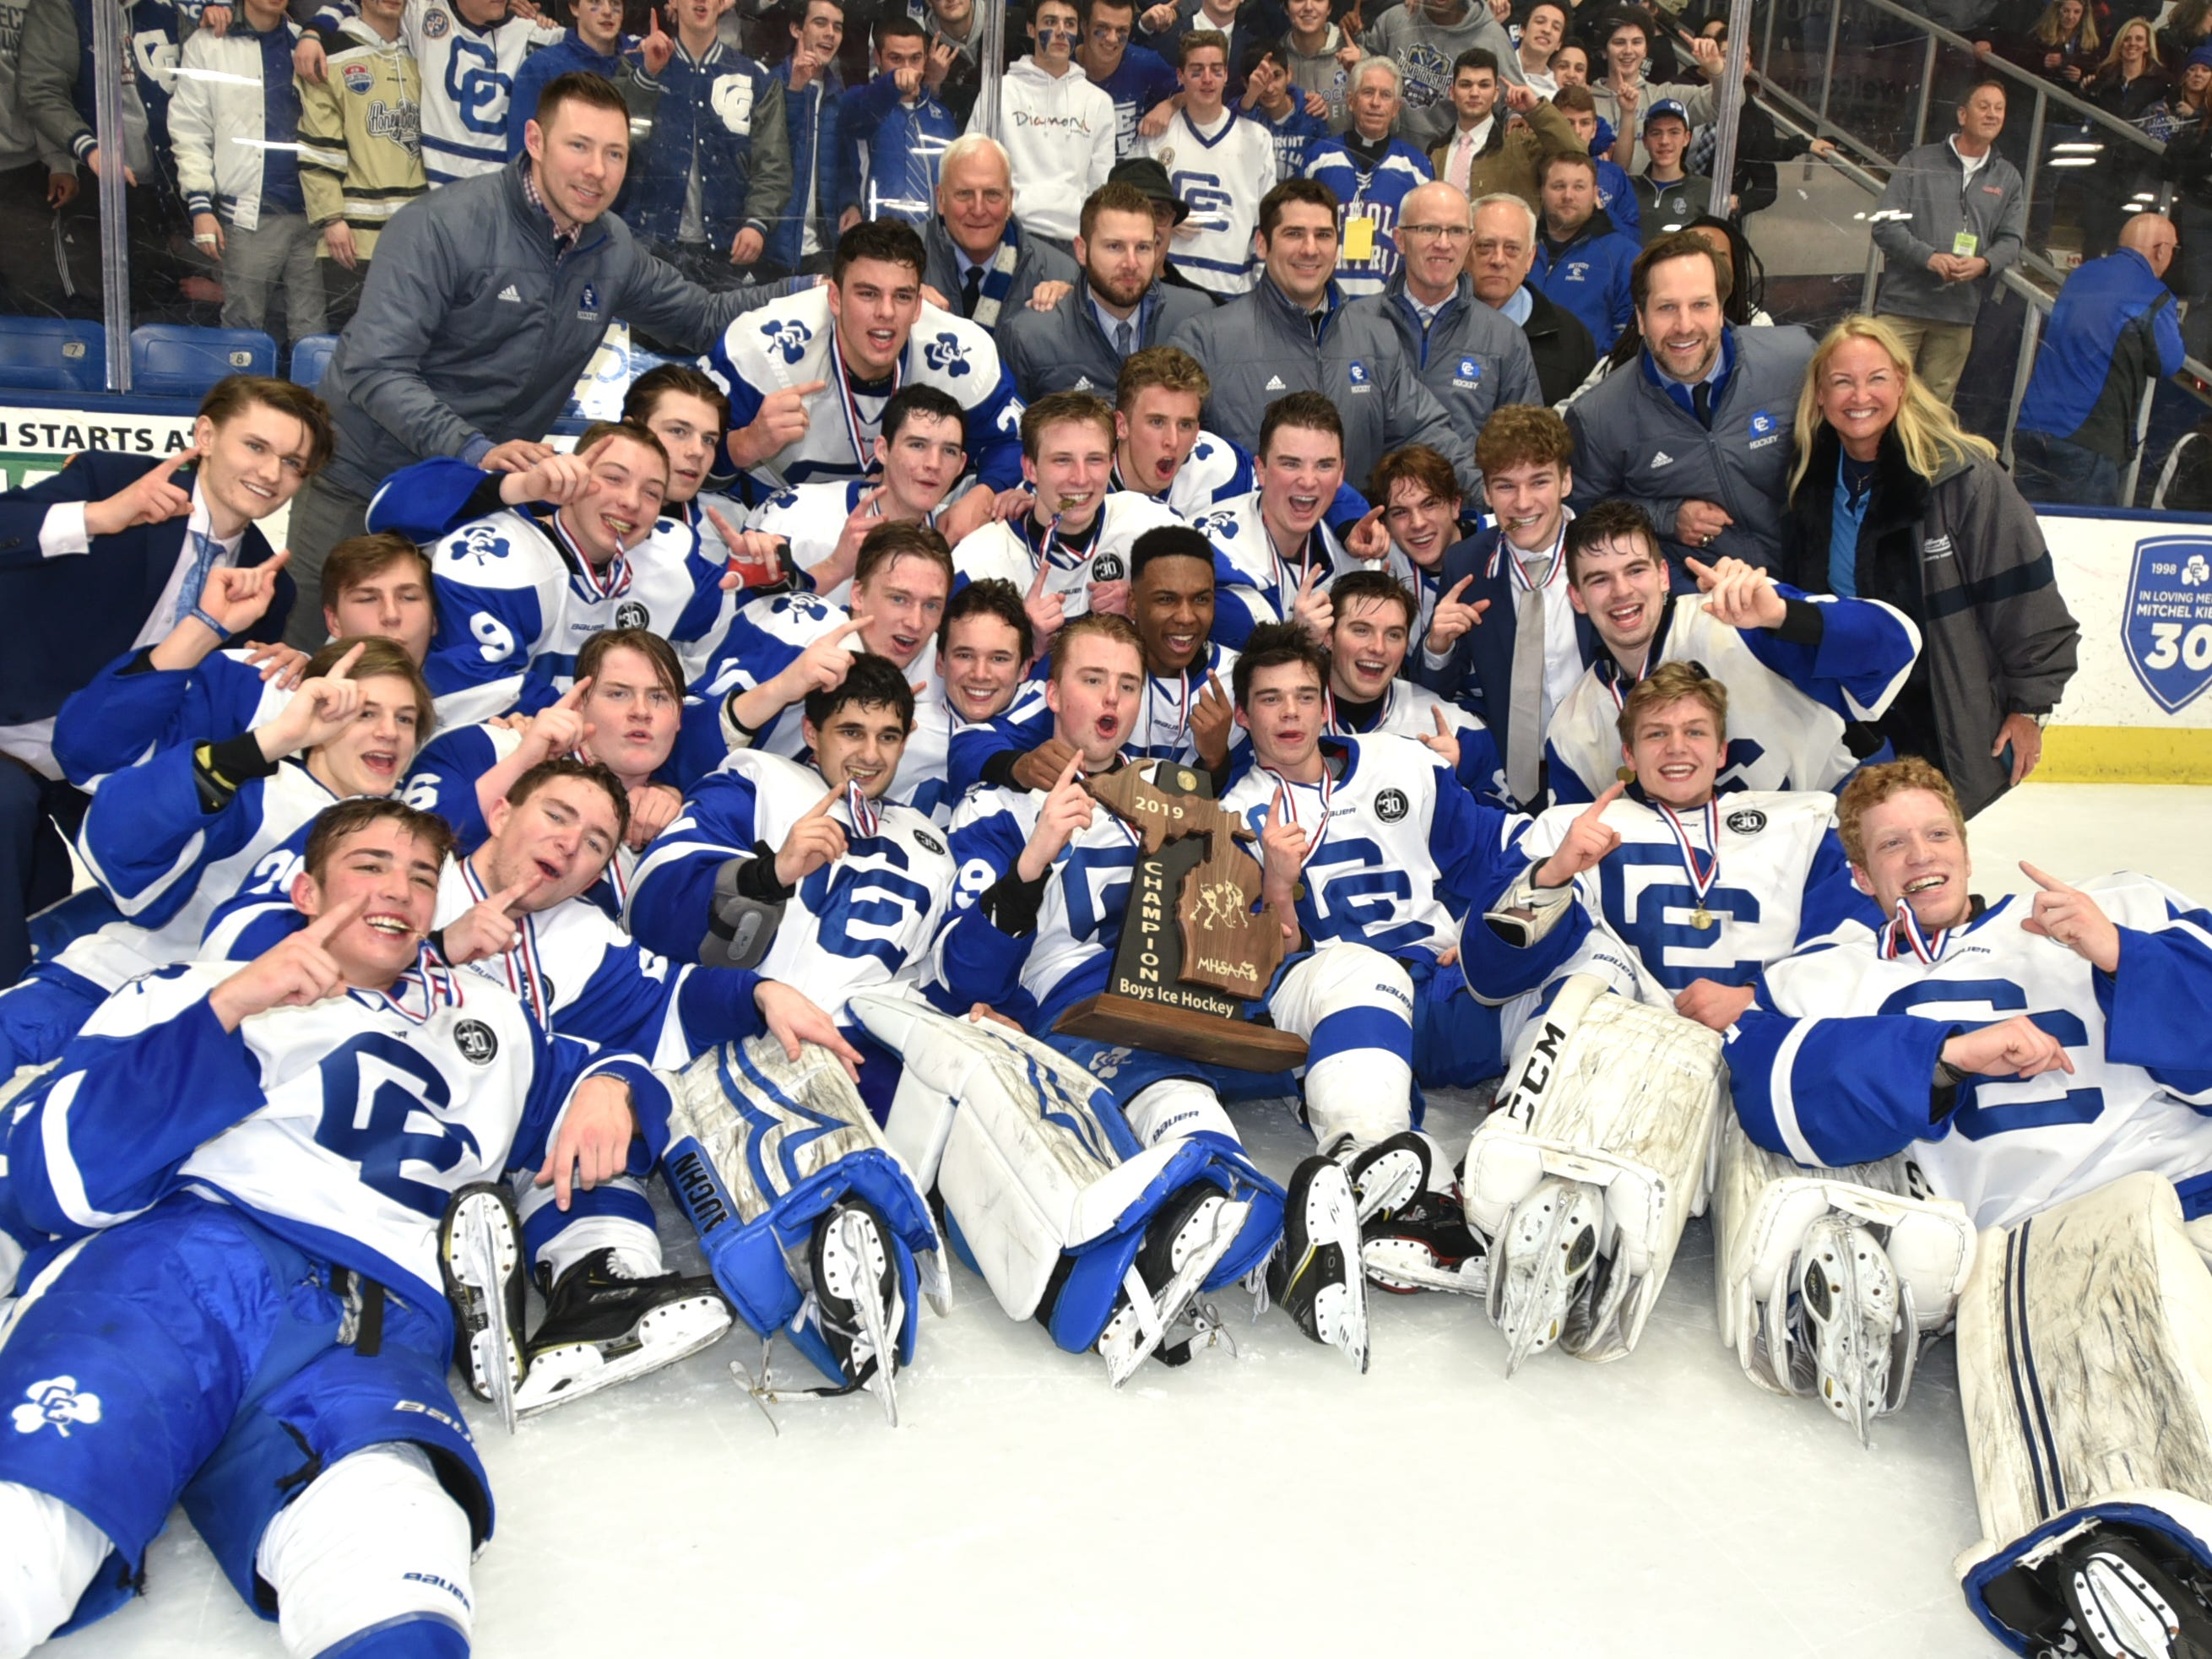 The Detroit Catholic Central Shamrocks pose with their Div. 1 hockey championship trophy on March 9, 2019 at USA Hockey Arena in Plymouth.